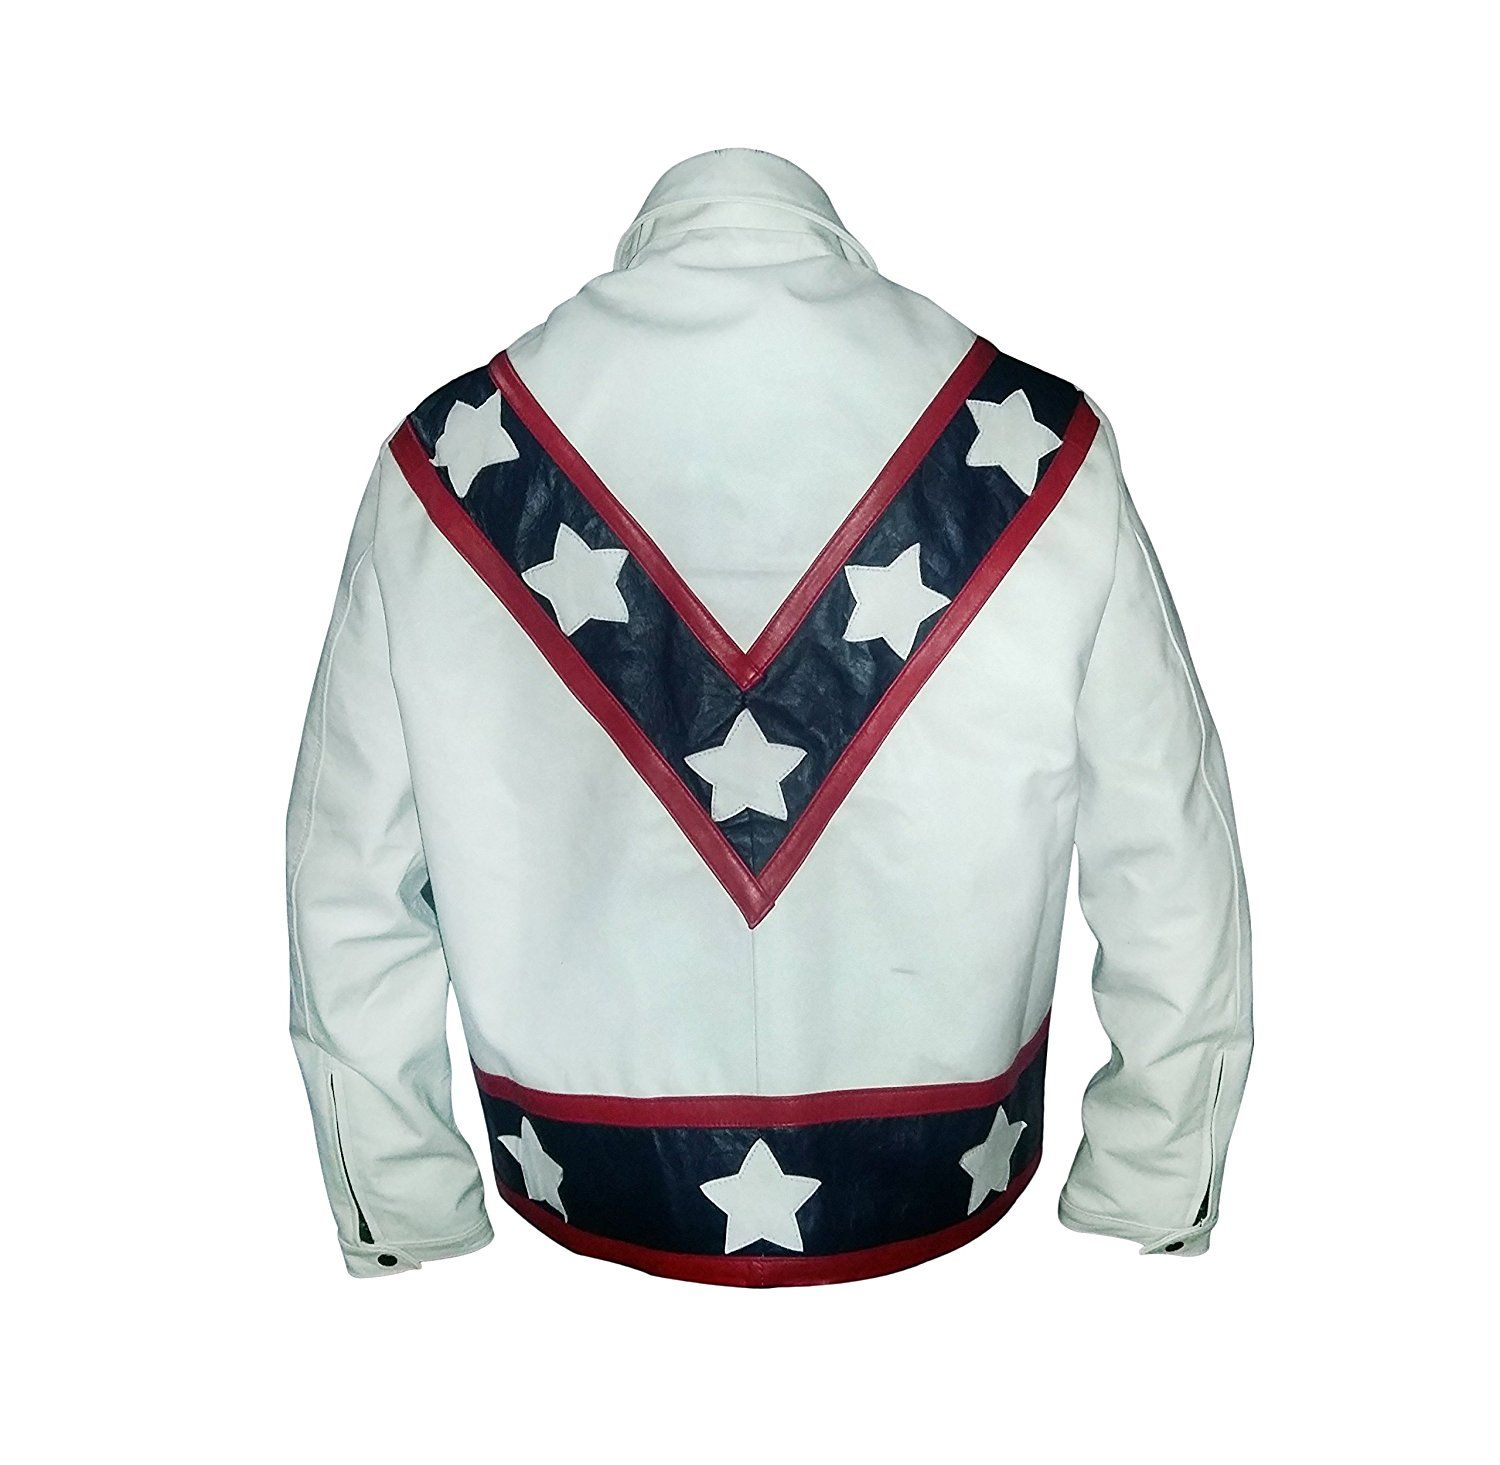 Evil Knivel Leather Jackets For Sale Jackets For Men